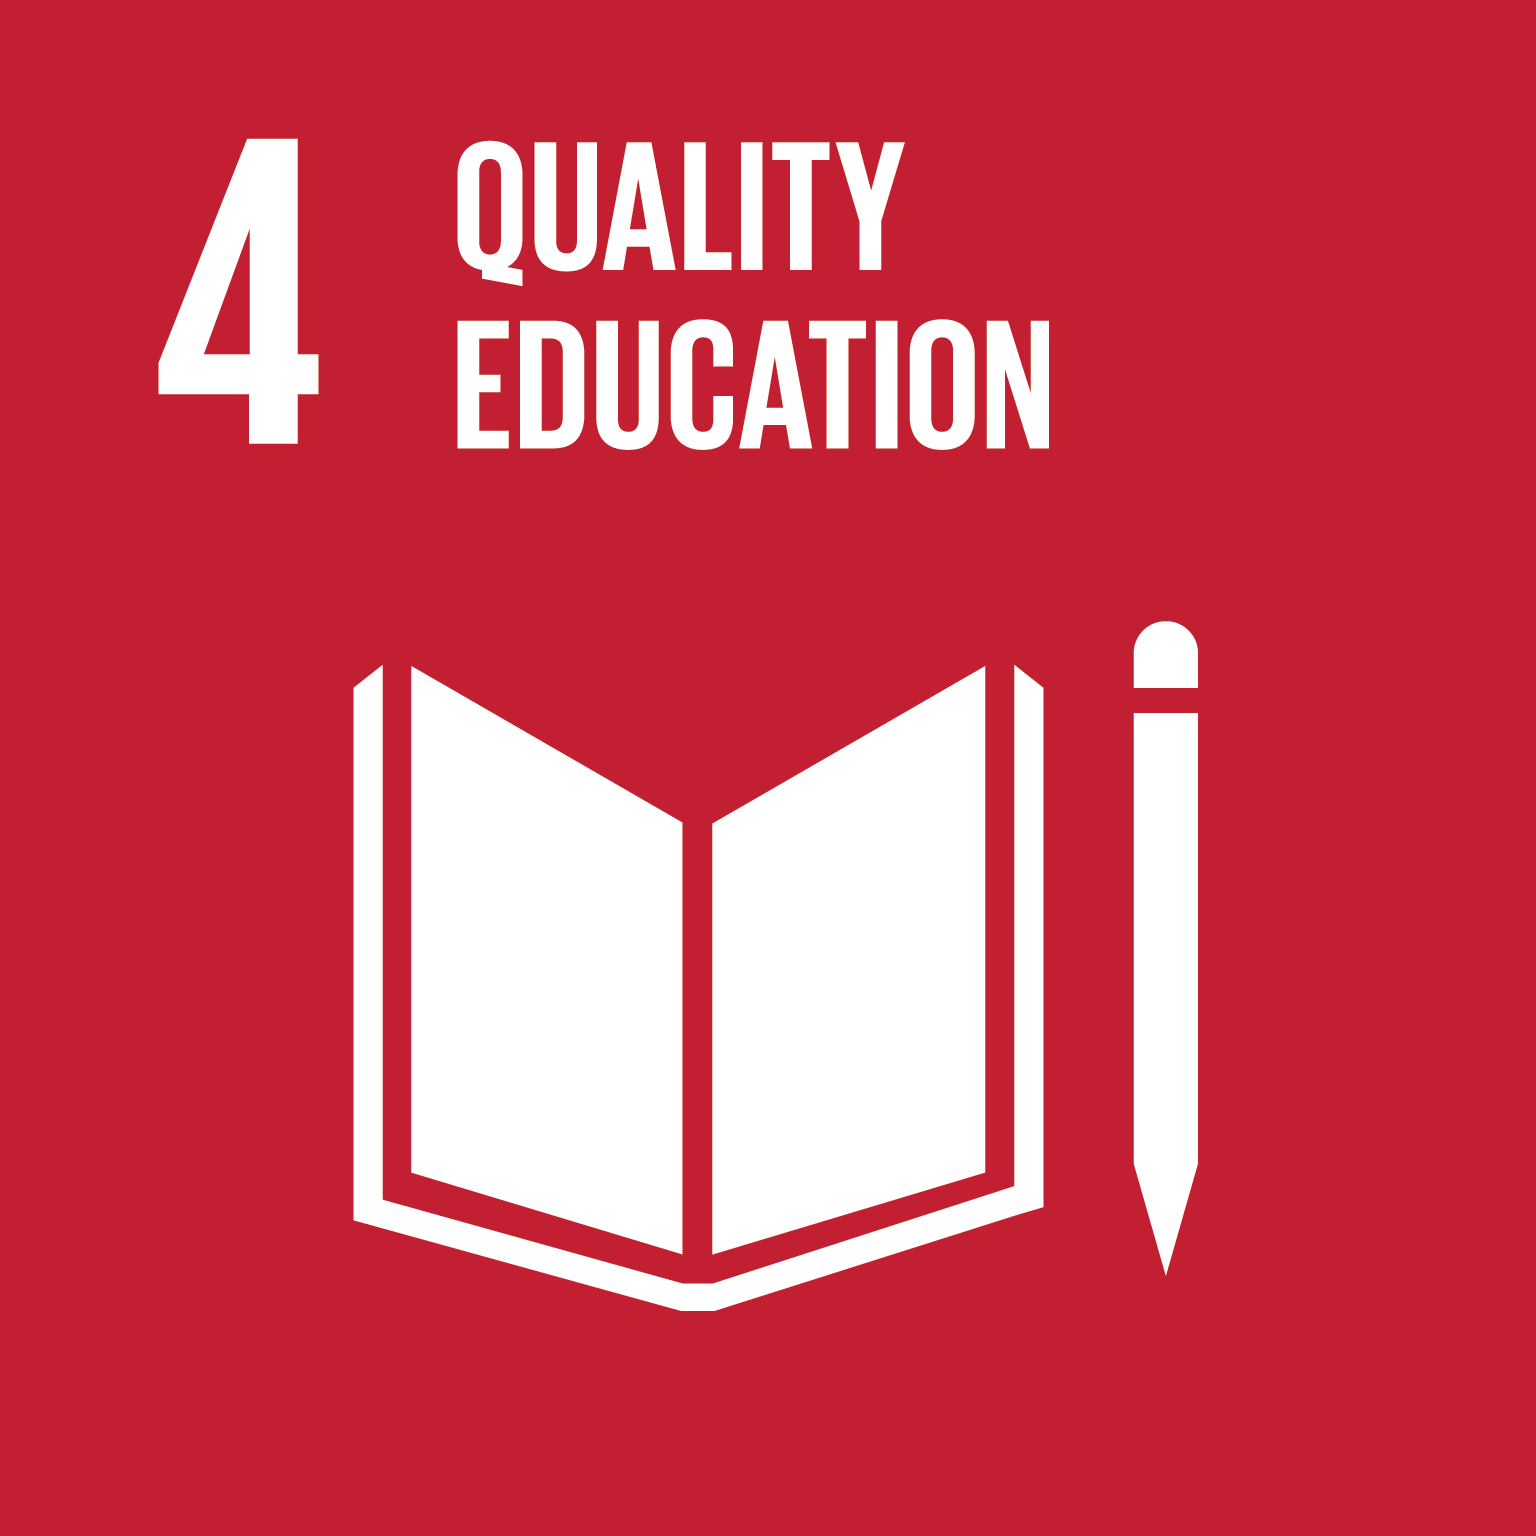 OTECHOS is working together with, among others, University of Agder to give students possibility to have a quality education that gives them quality of life and sustainability.